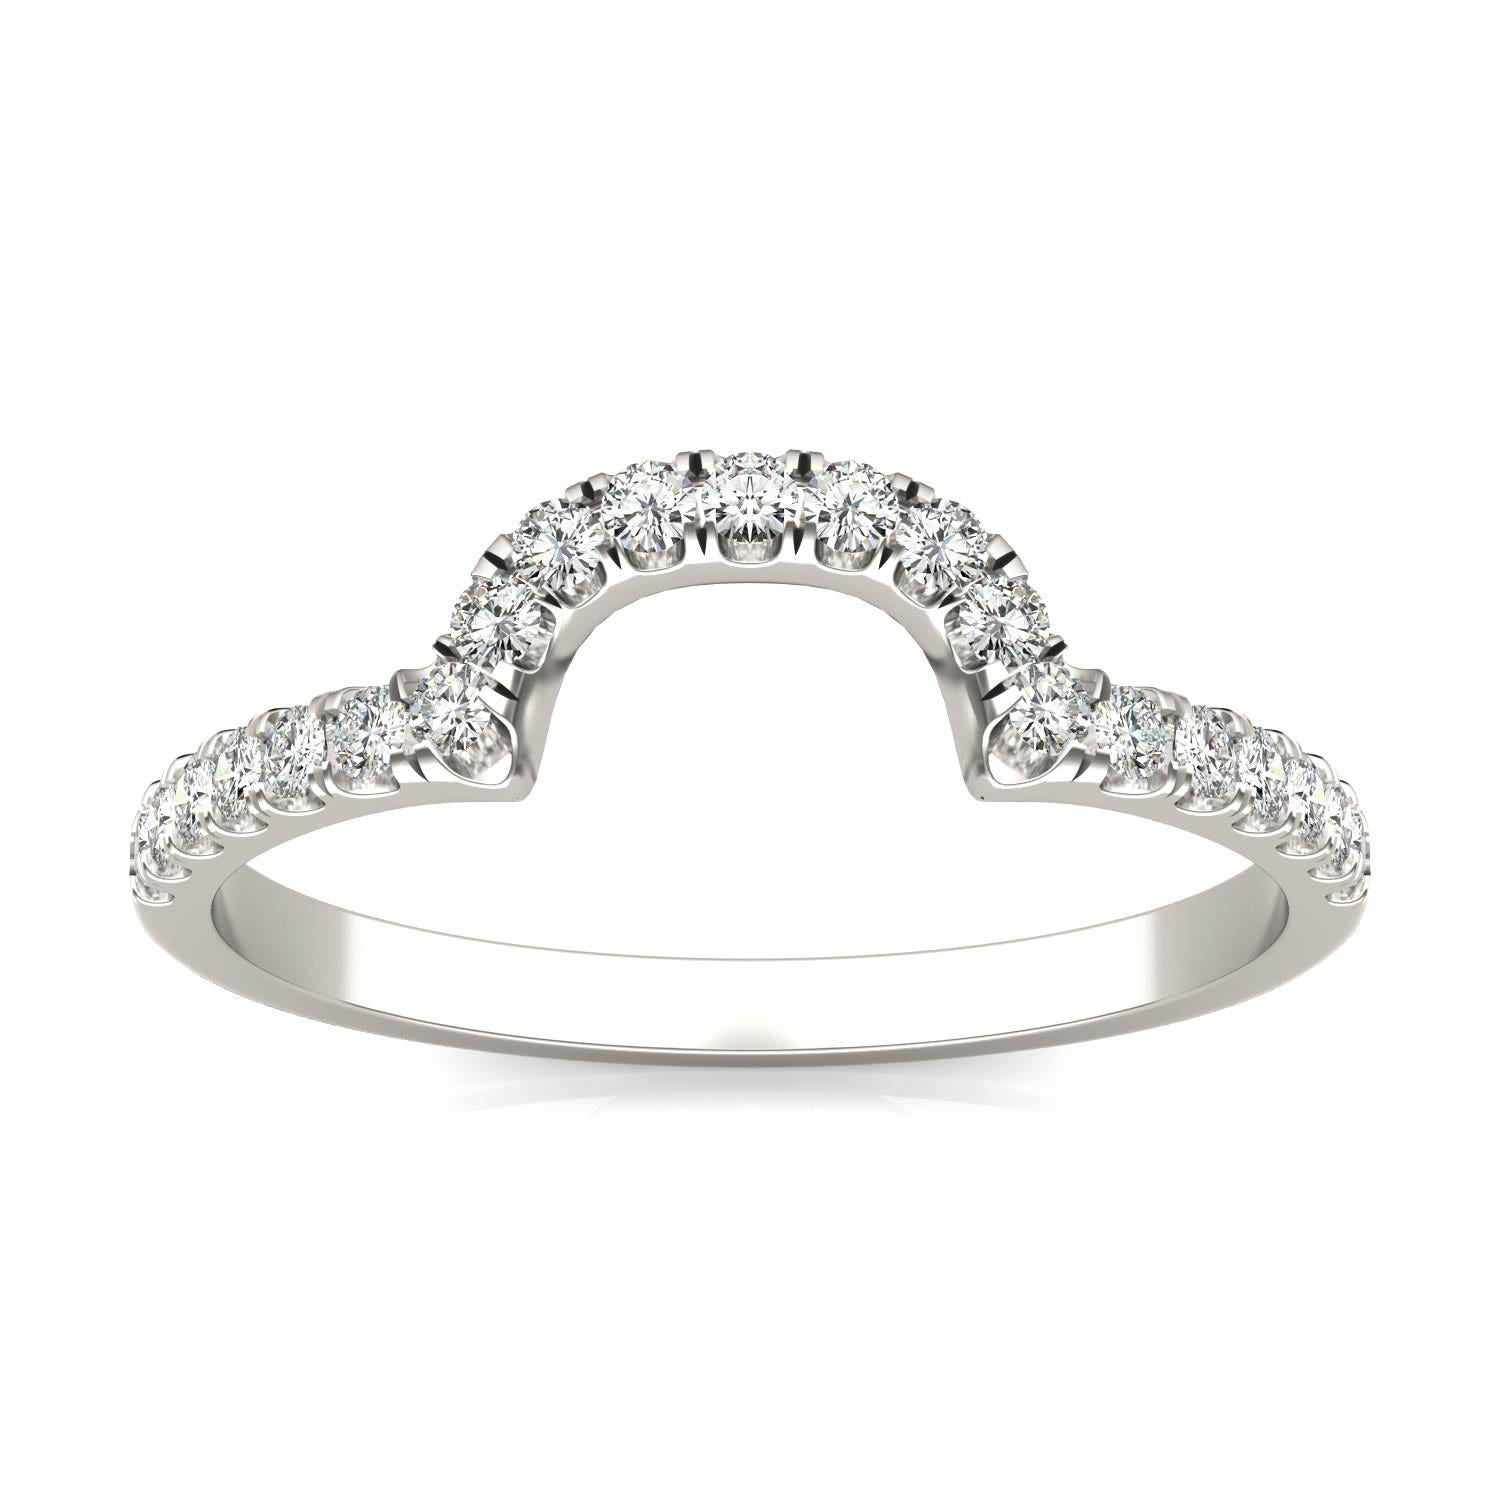 Contoured Band Wedding Ring in 14K White Gold, Size: 5, 0.21 CTW DEW Round Forever One Moissanite Accent Stones Charles & Colvard